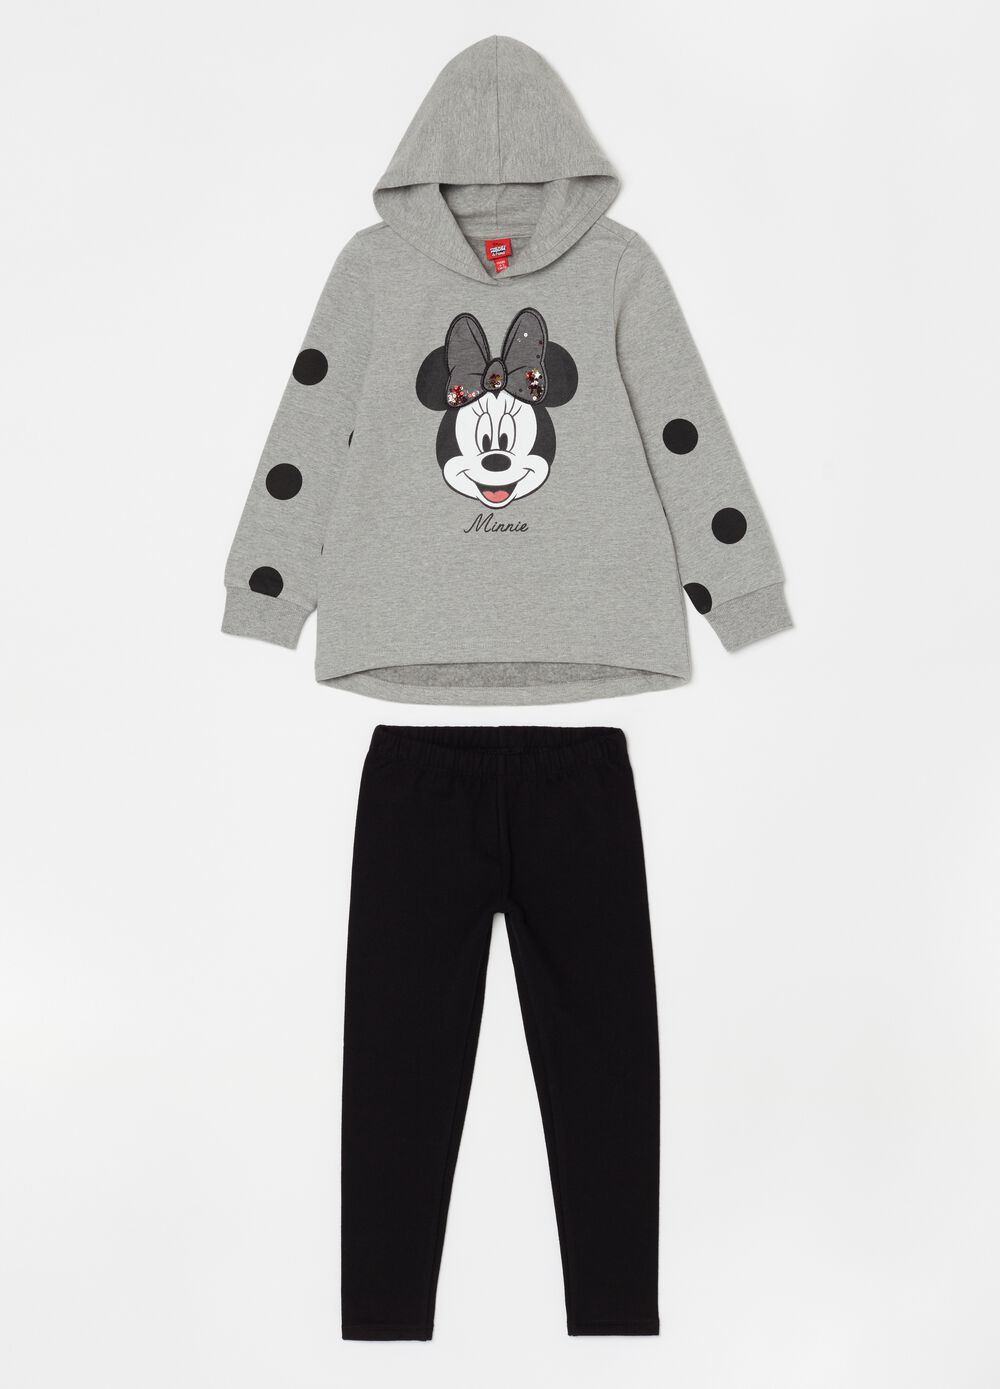 Disney Minnie Mouse jogging set with sweatshirt and leggings